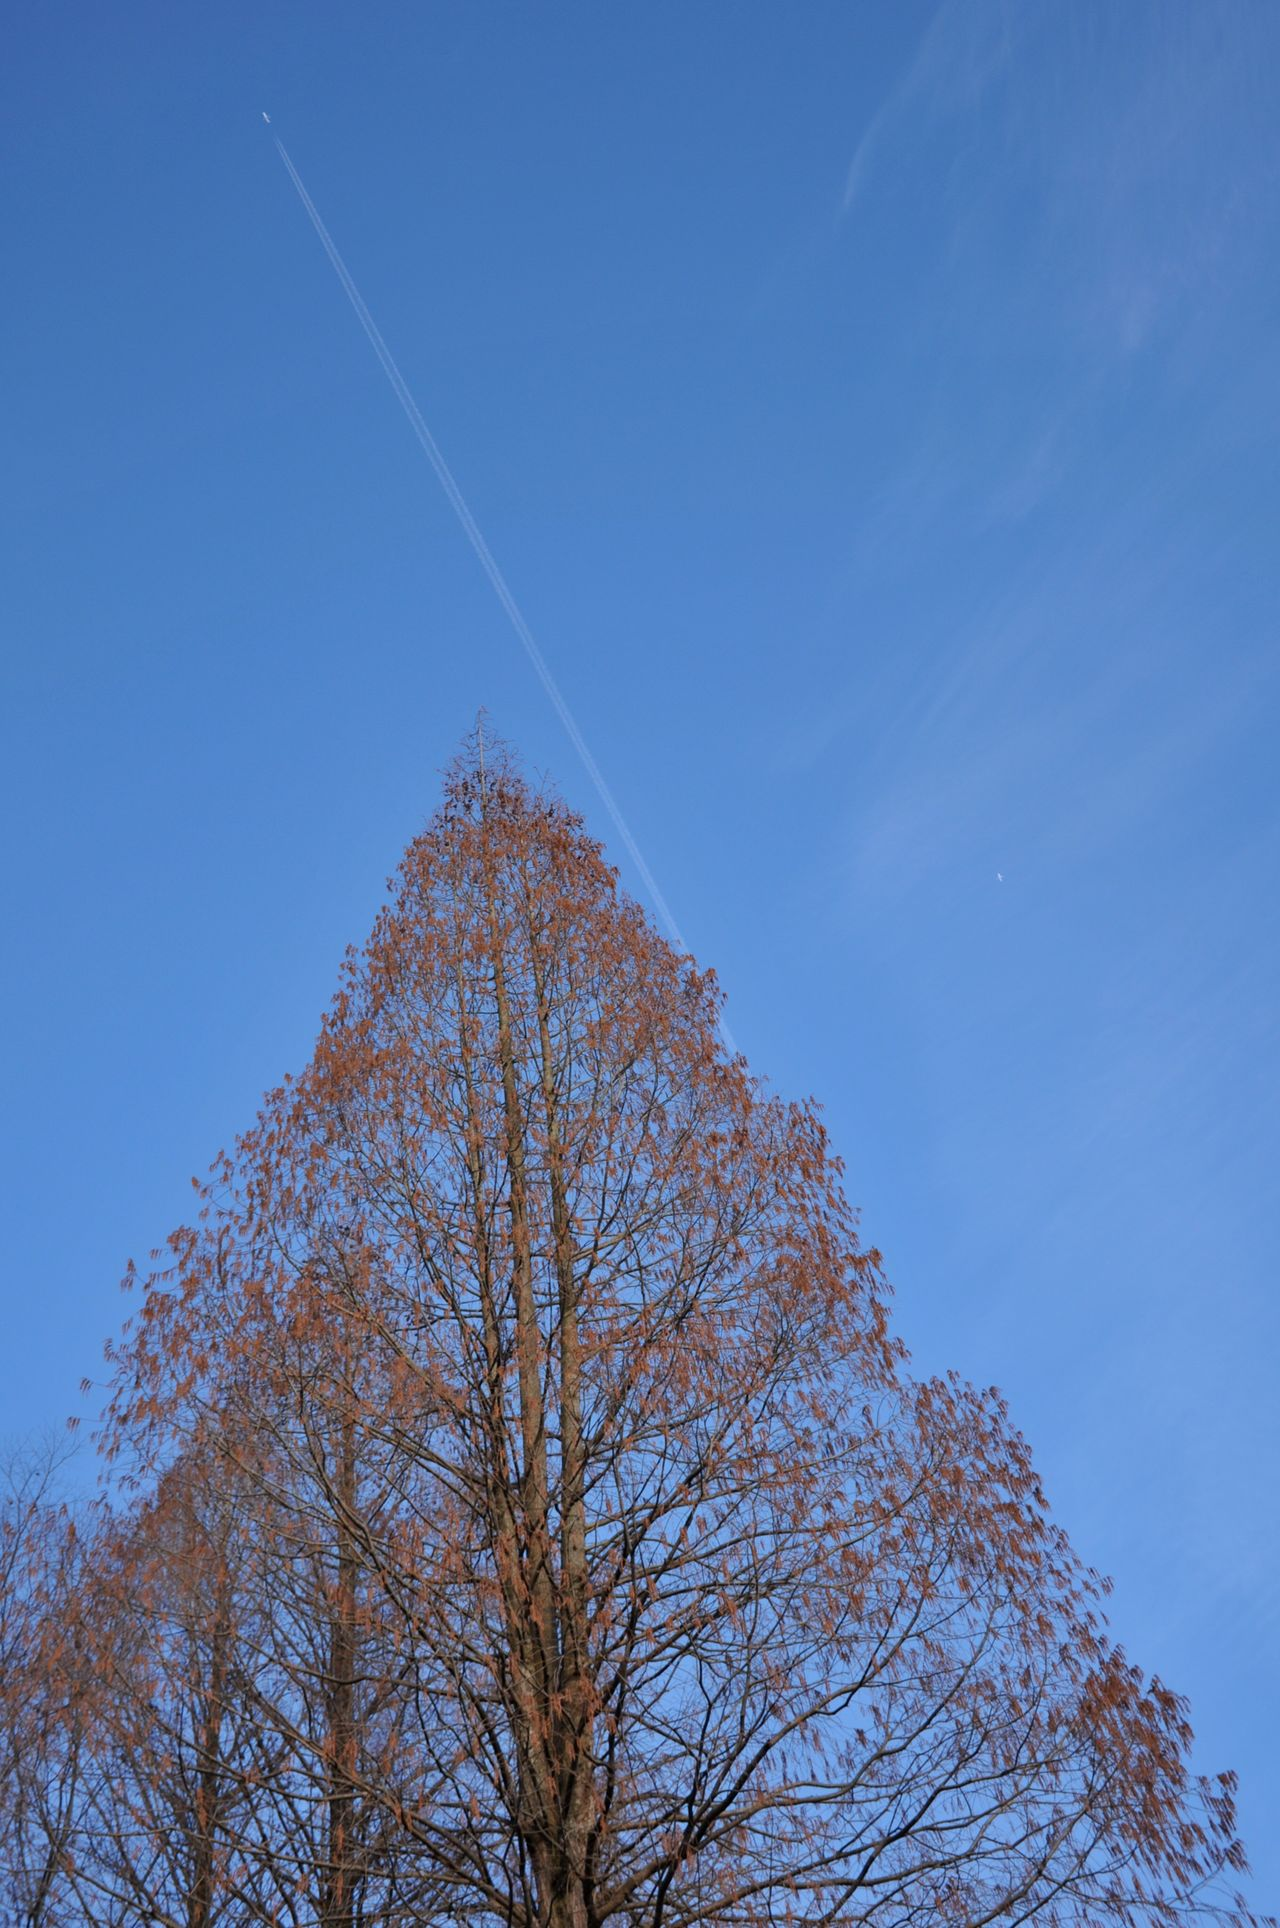 Blue Low Angle View Tree Nature Beauty In Nature No People Branch Sky Day Outdoors Plane Contrail